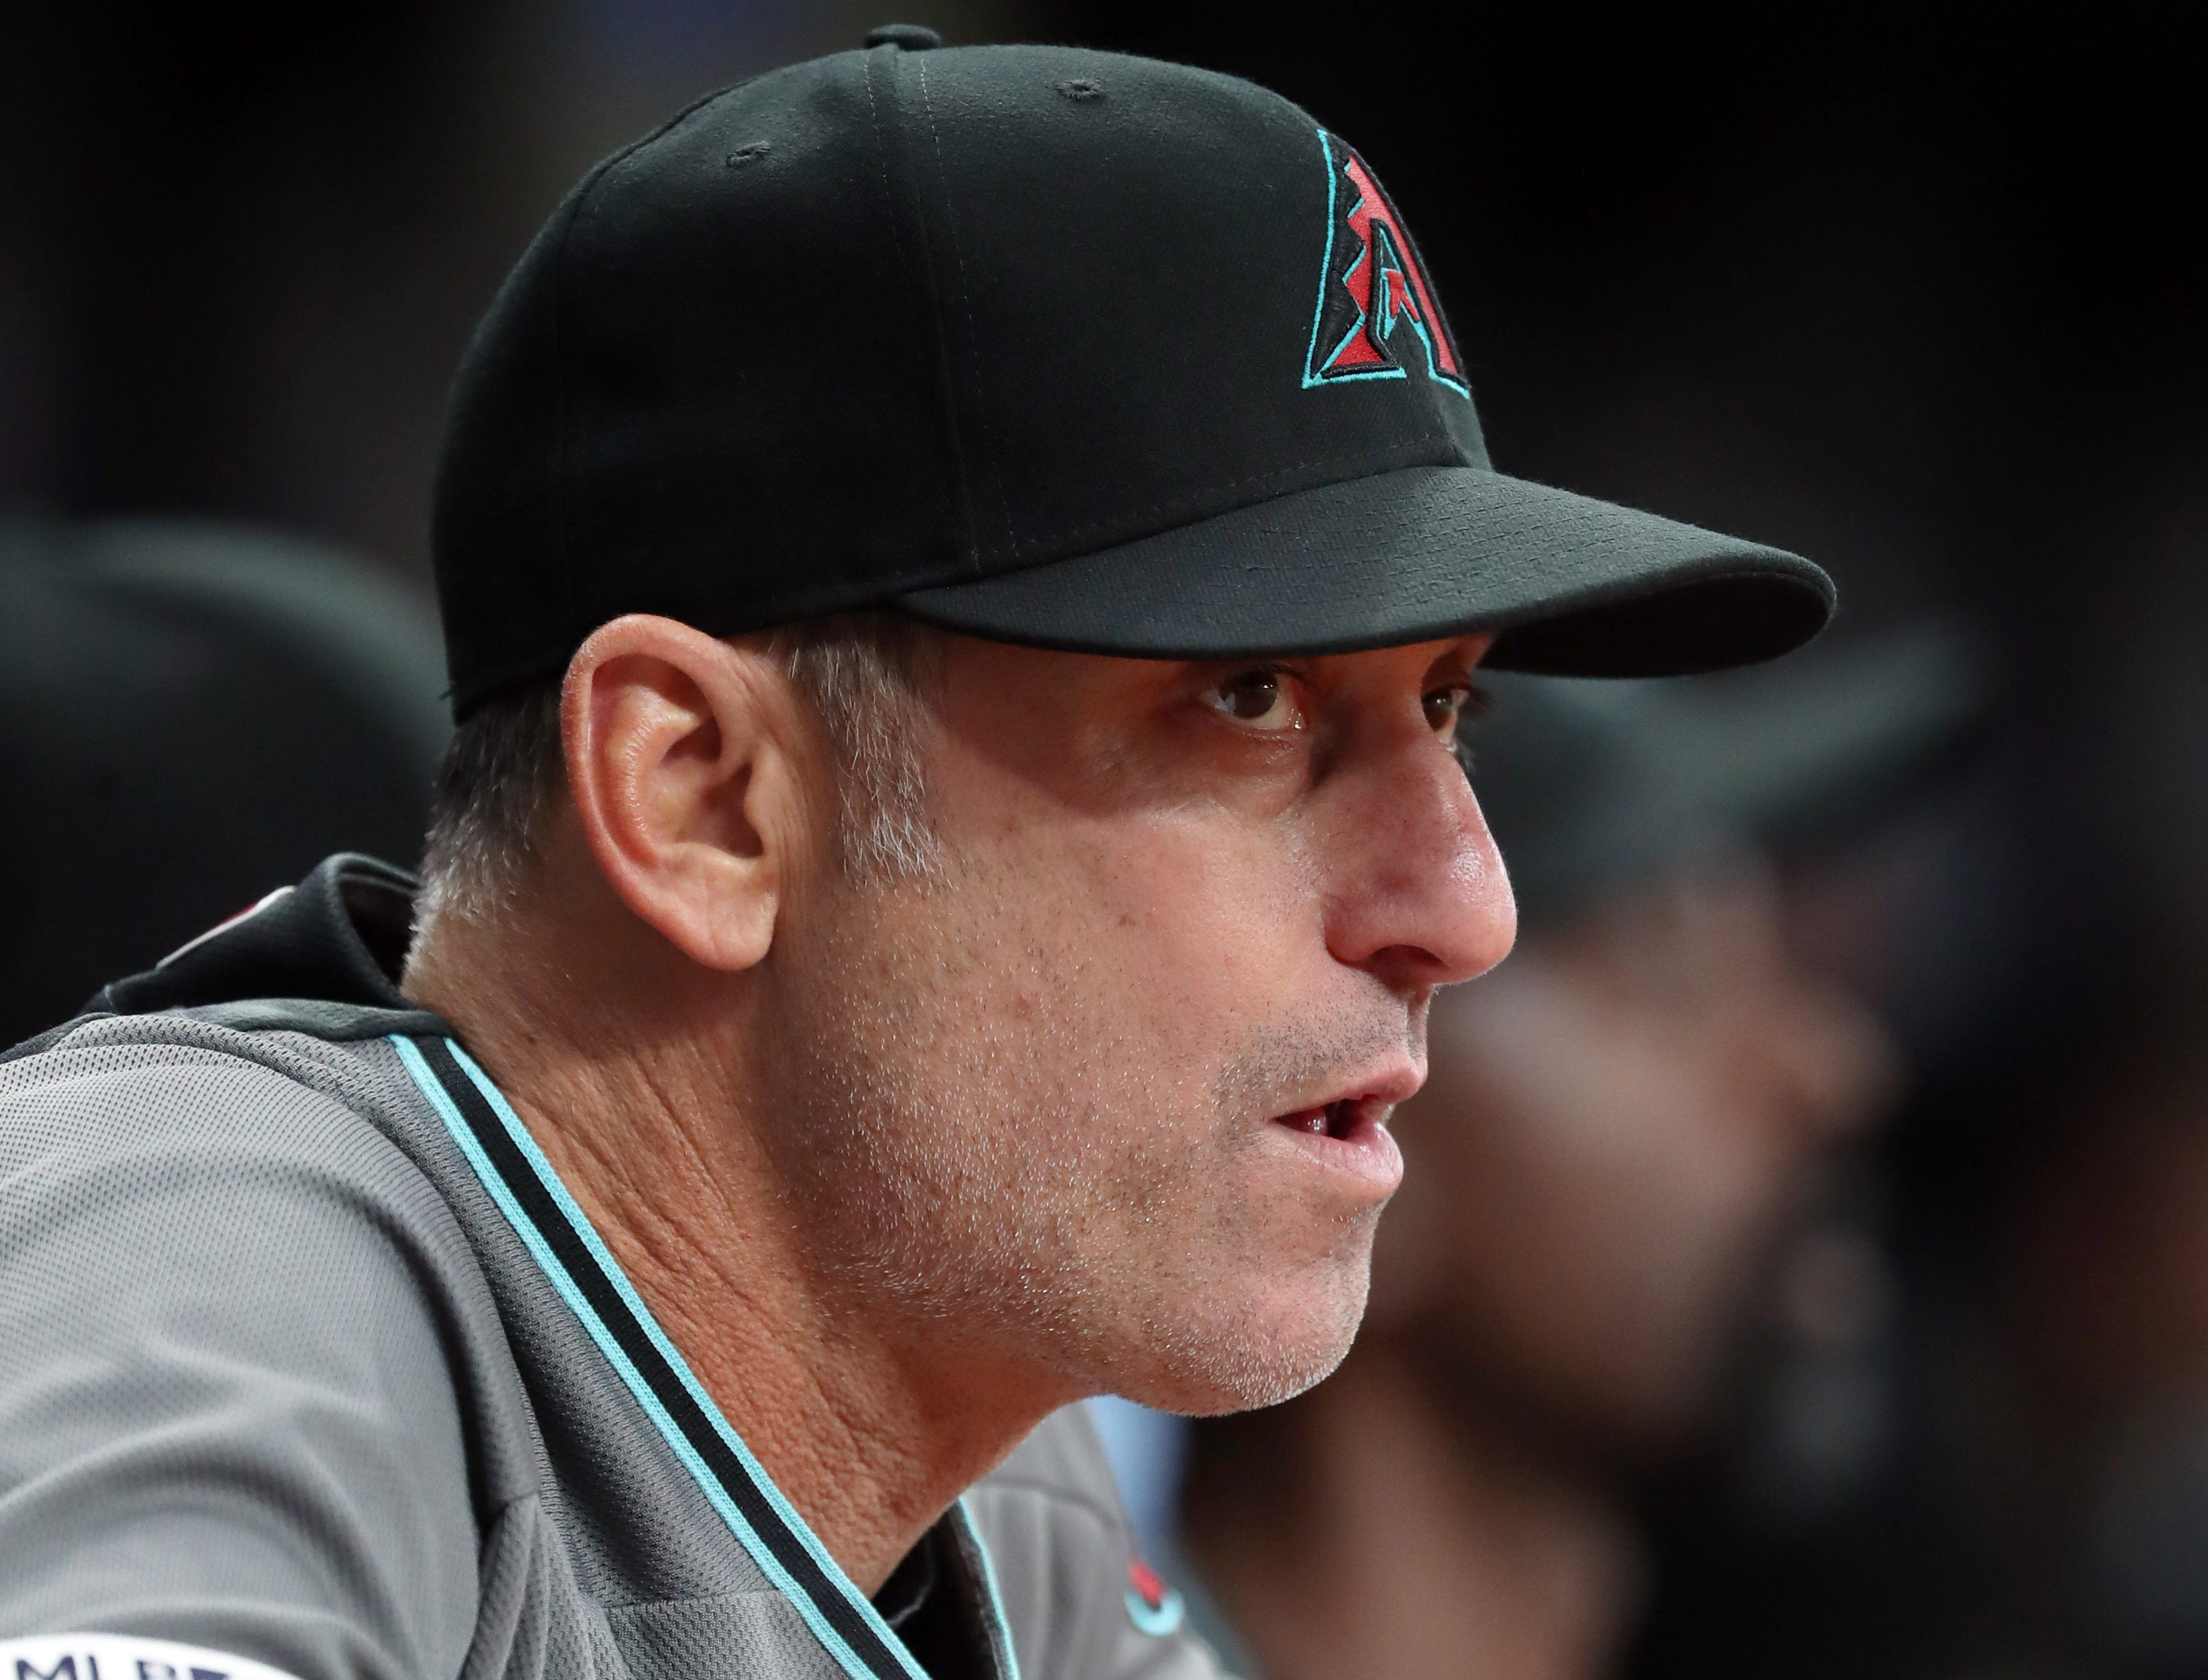 May 7, 2019; St. Petersburg, FL, USA; Arizona Diamondbacks manager Torey Lovullo (17) looks on during the first inning against the Tampa Bay Rays at Tropicana Field. Mandatory Credit: Kim Klement-USA TODAY Sports